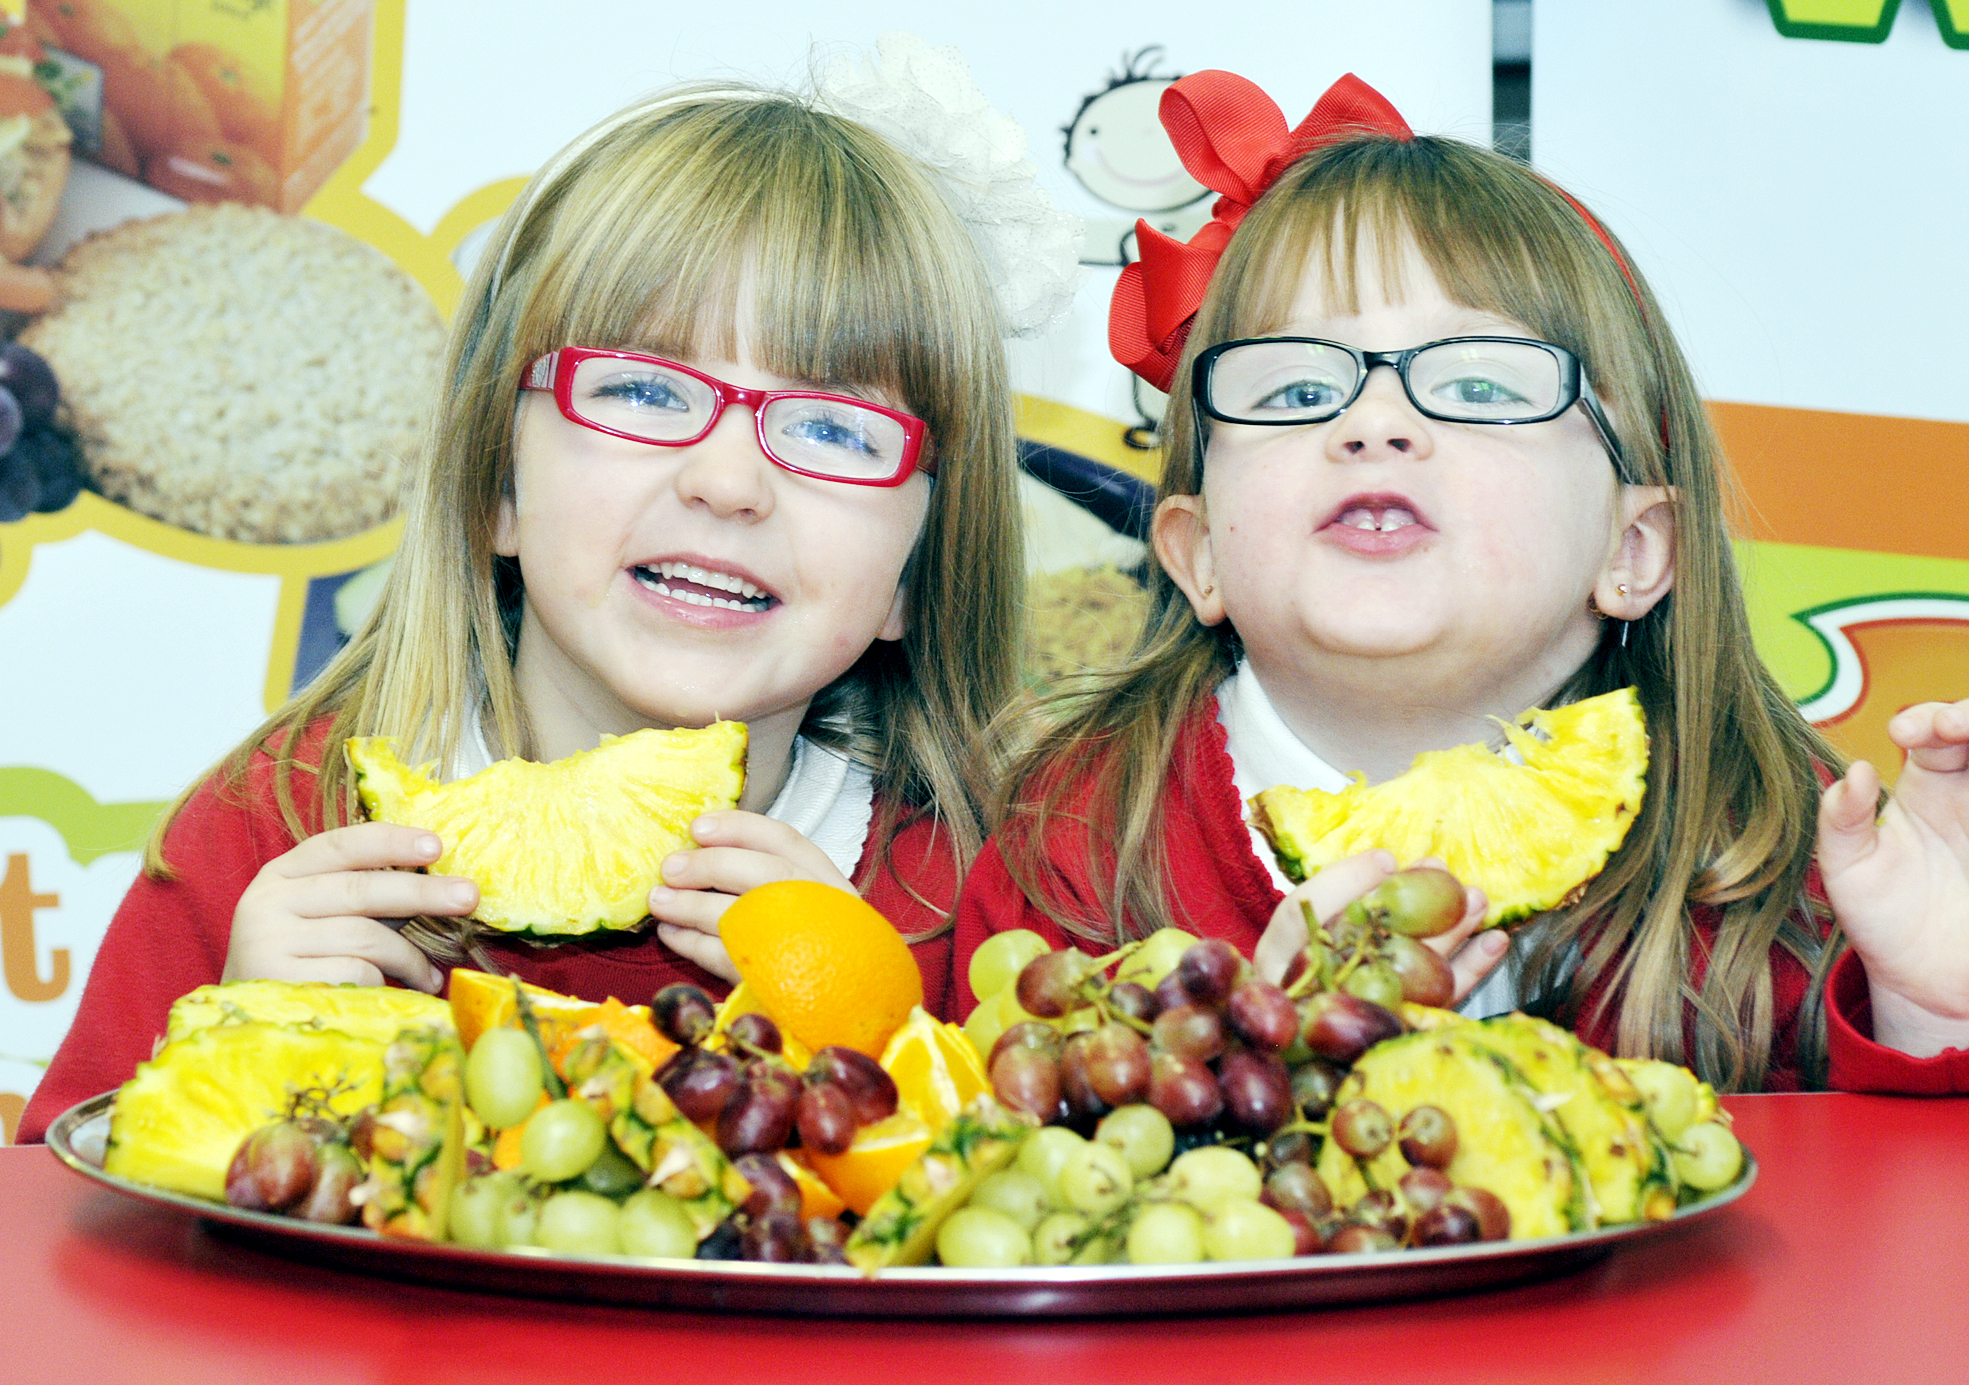 Keira Byrne and Madison Tinsley tuck into some healthy snacks at Kearsley West Primary School — the first in the country to promote the Food Dudes campaign to encourage good eating habits